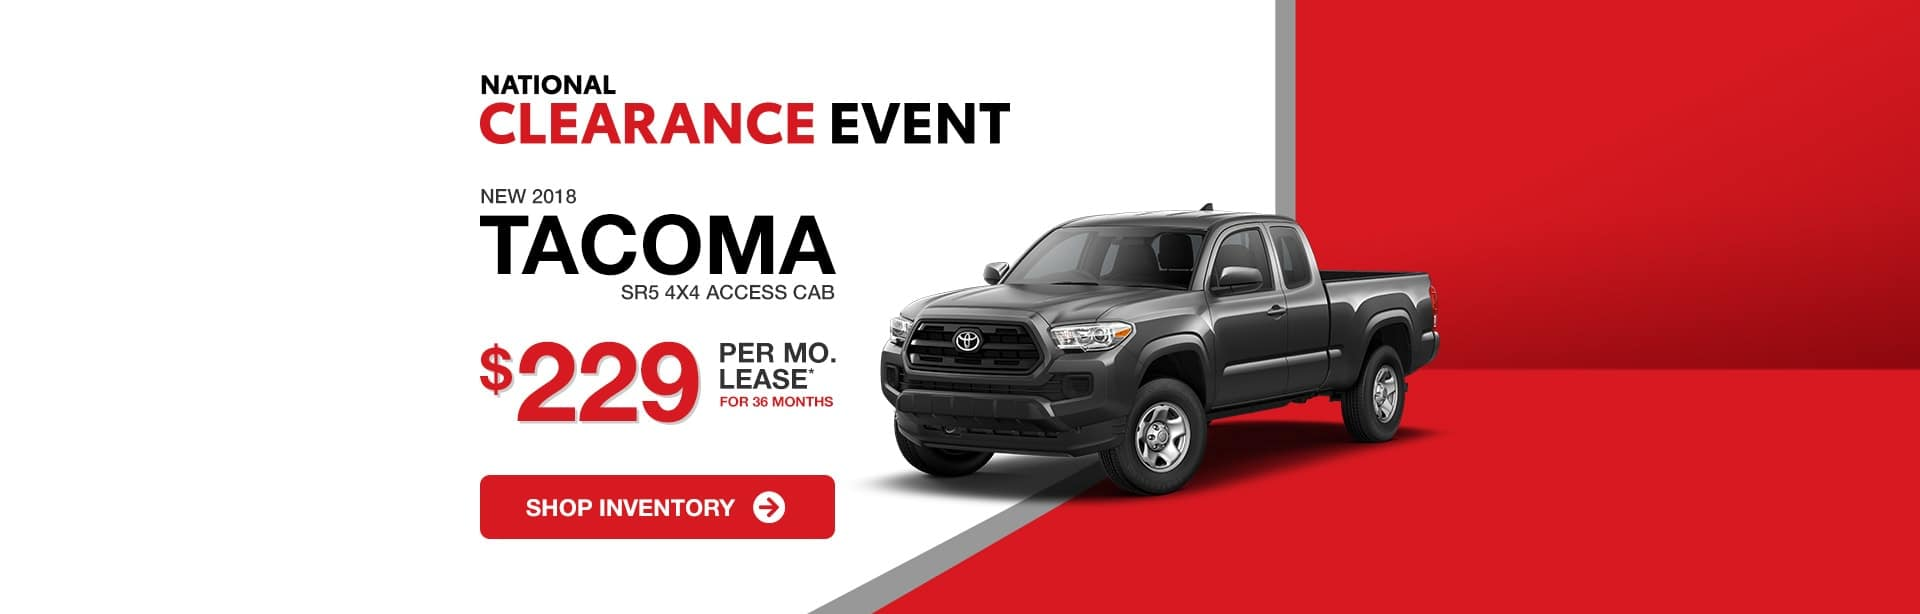 Toyota Tacoma Best Lease Special for Indianapolis, Indiana